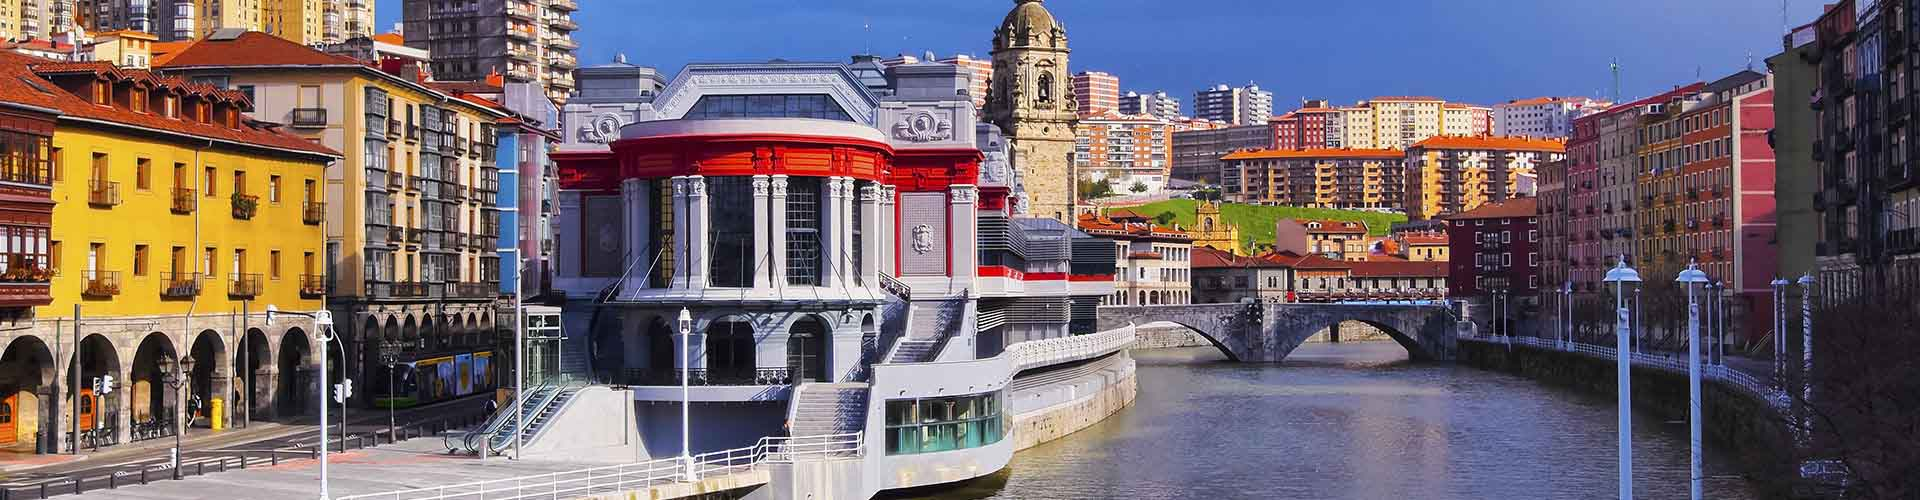 Bilbao – Hostels in Bilbao. Maps for Bilbao, Photos and Reviews for each hostel in Bilbao.